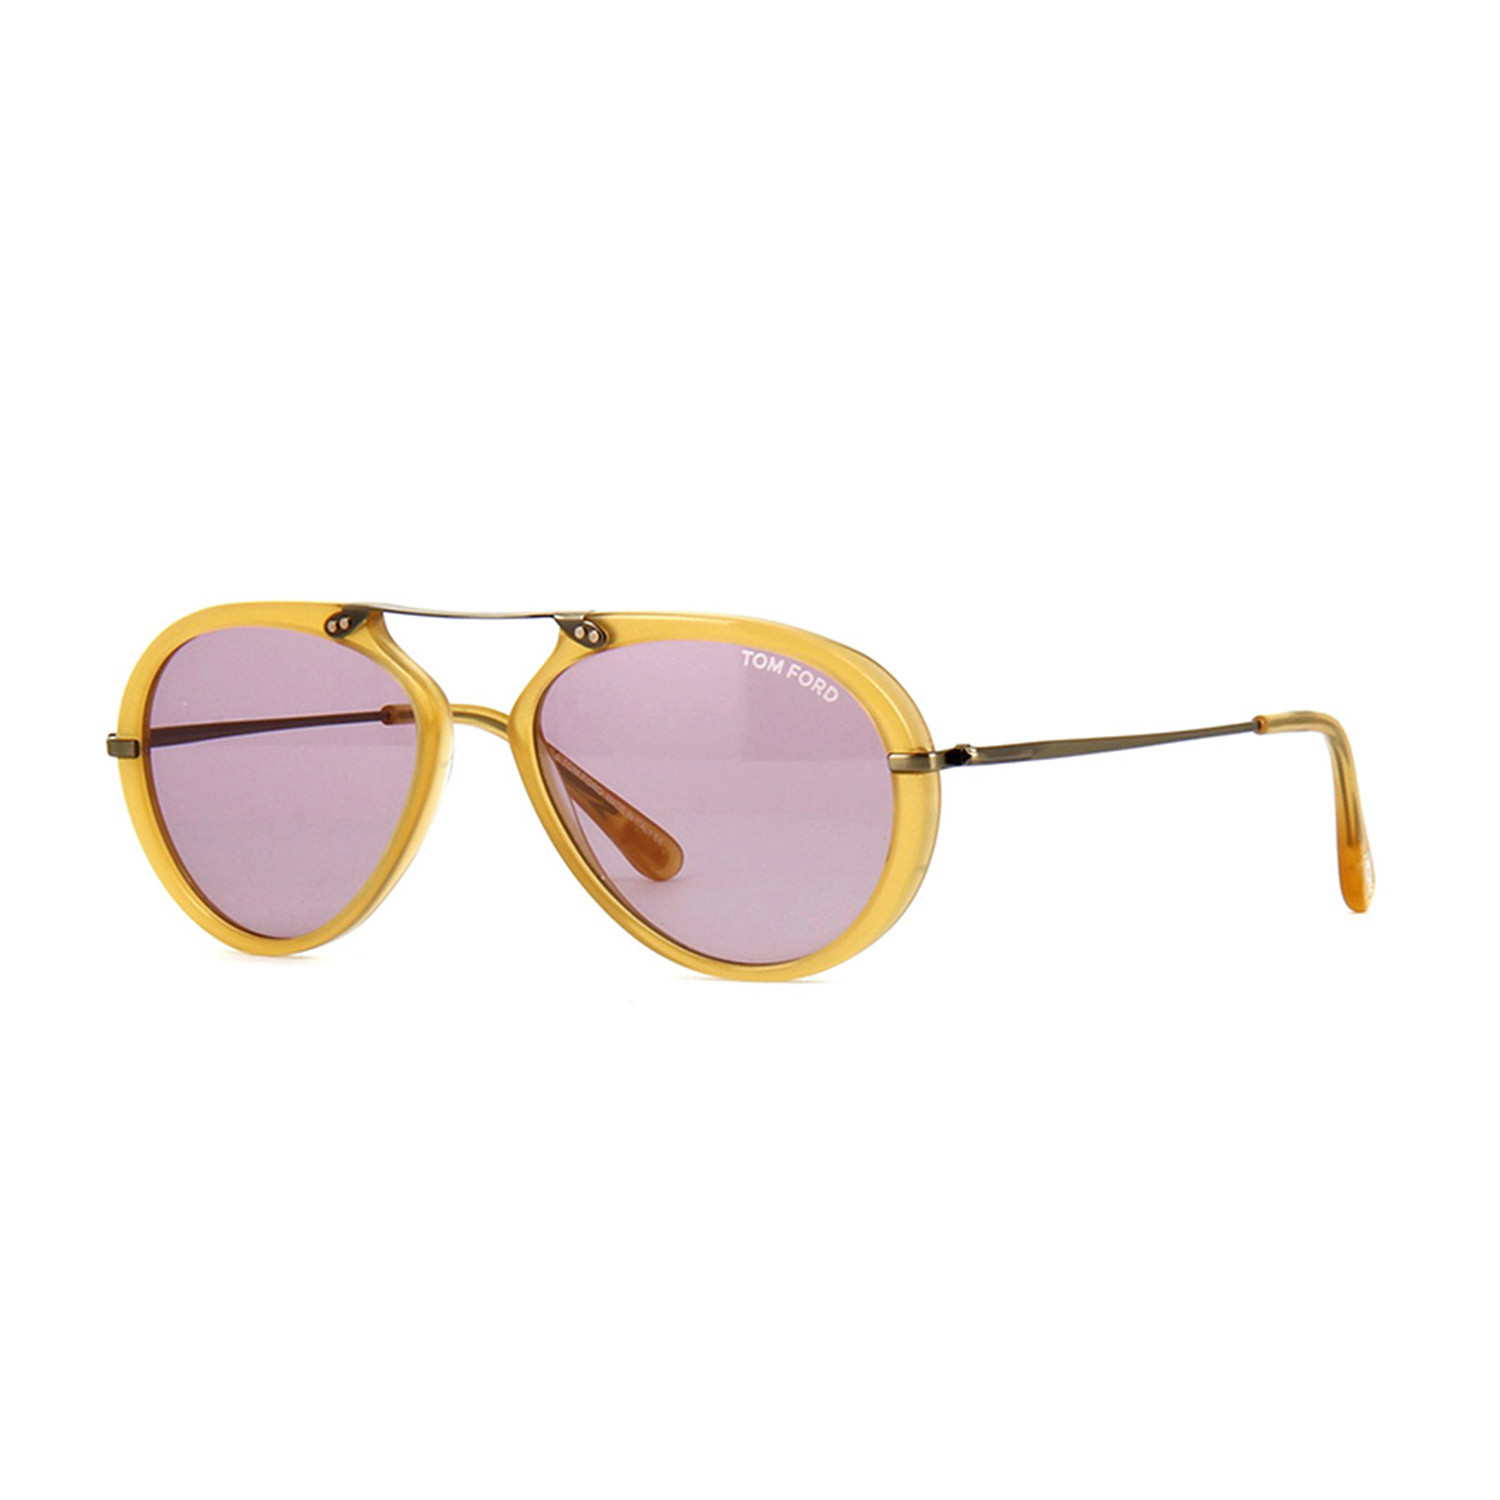 0e8daca863fa1 Men s Aaron Sunglasses    Yellow + Violet - Tom Ford - Touch of Modern